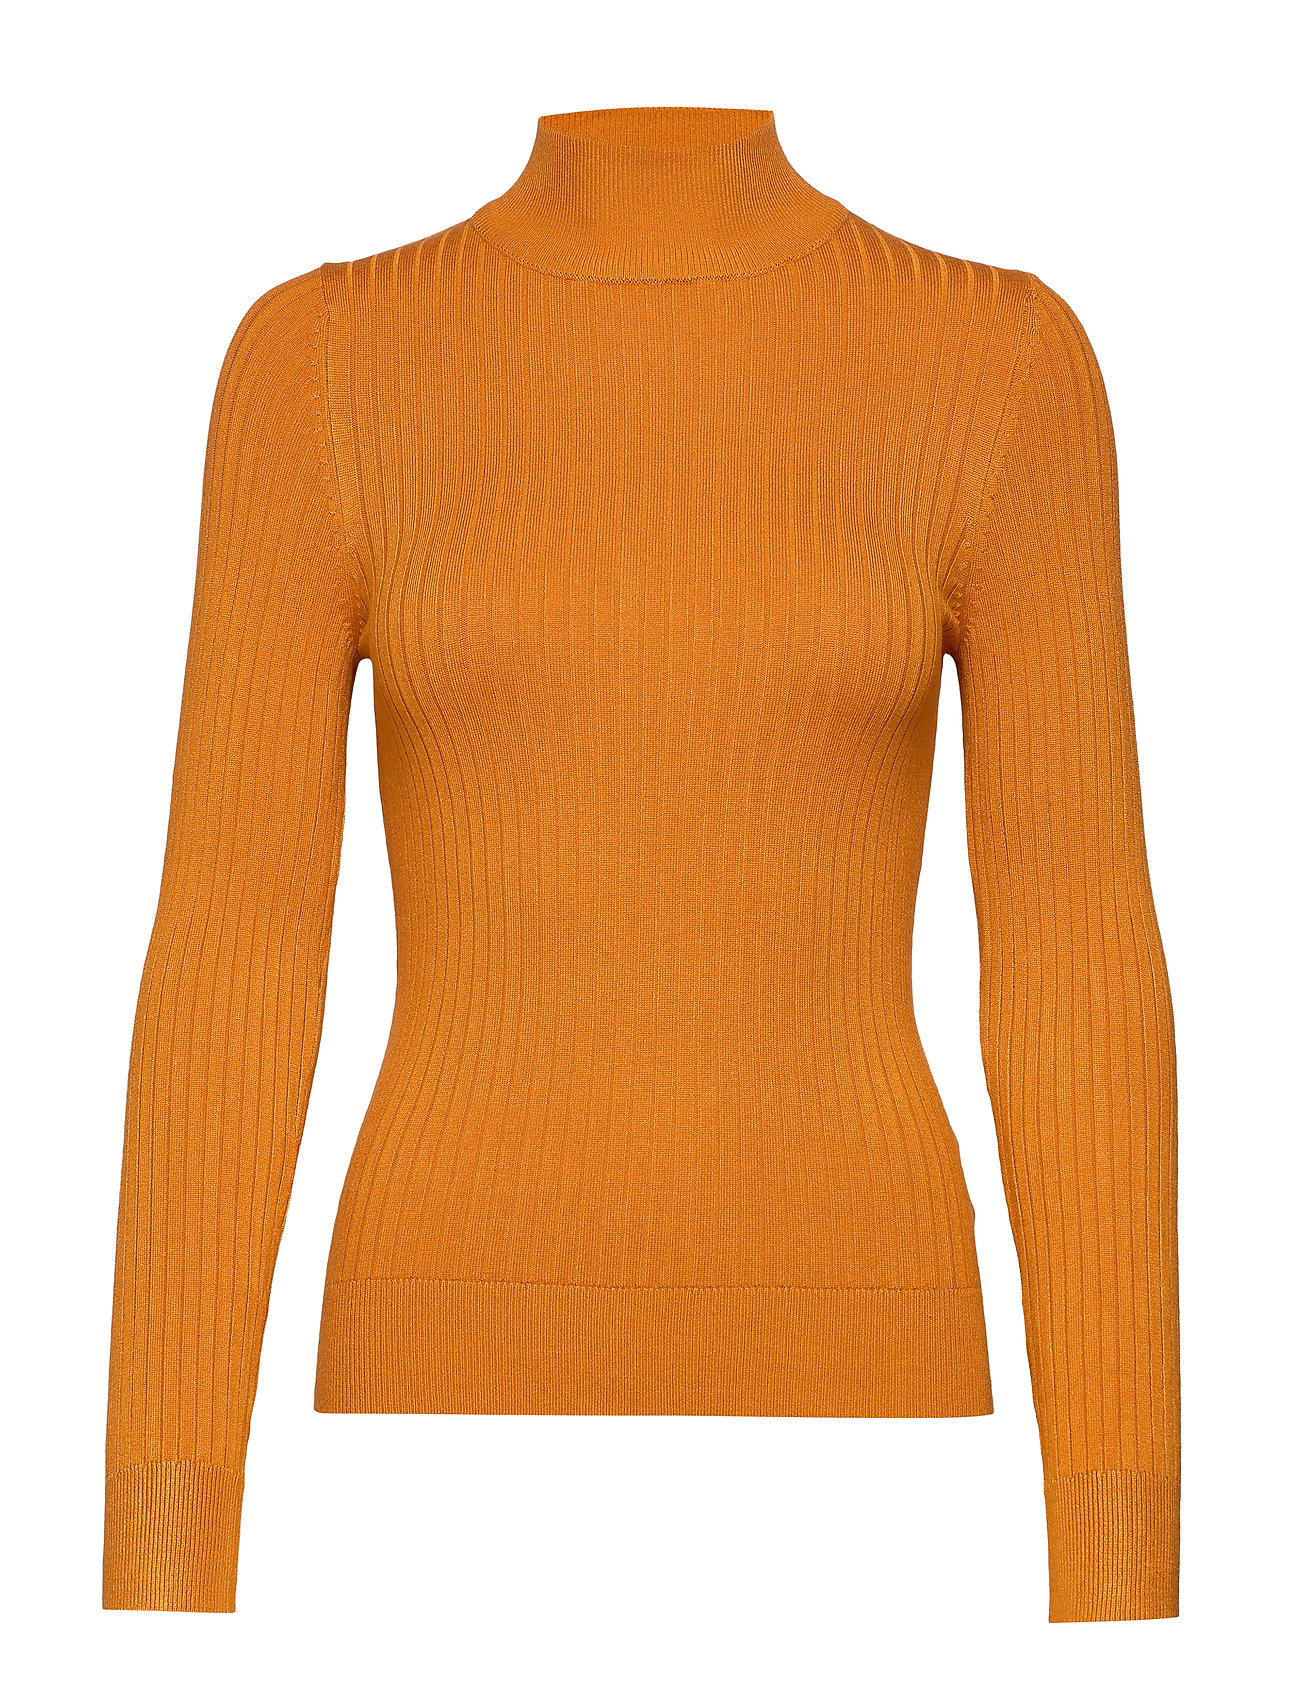 Gina Tricot Julia knitted sweater - YARN